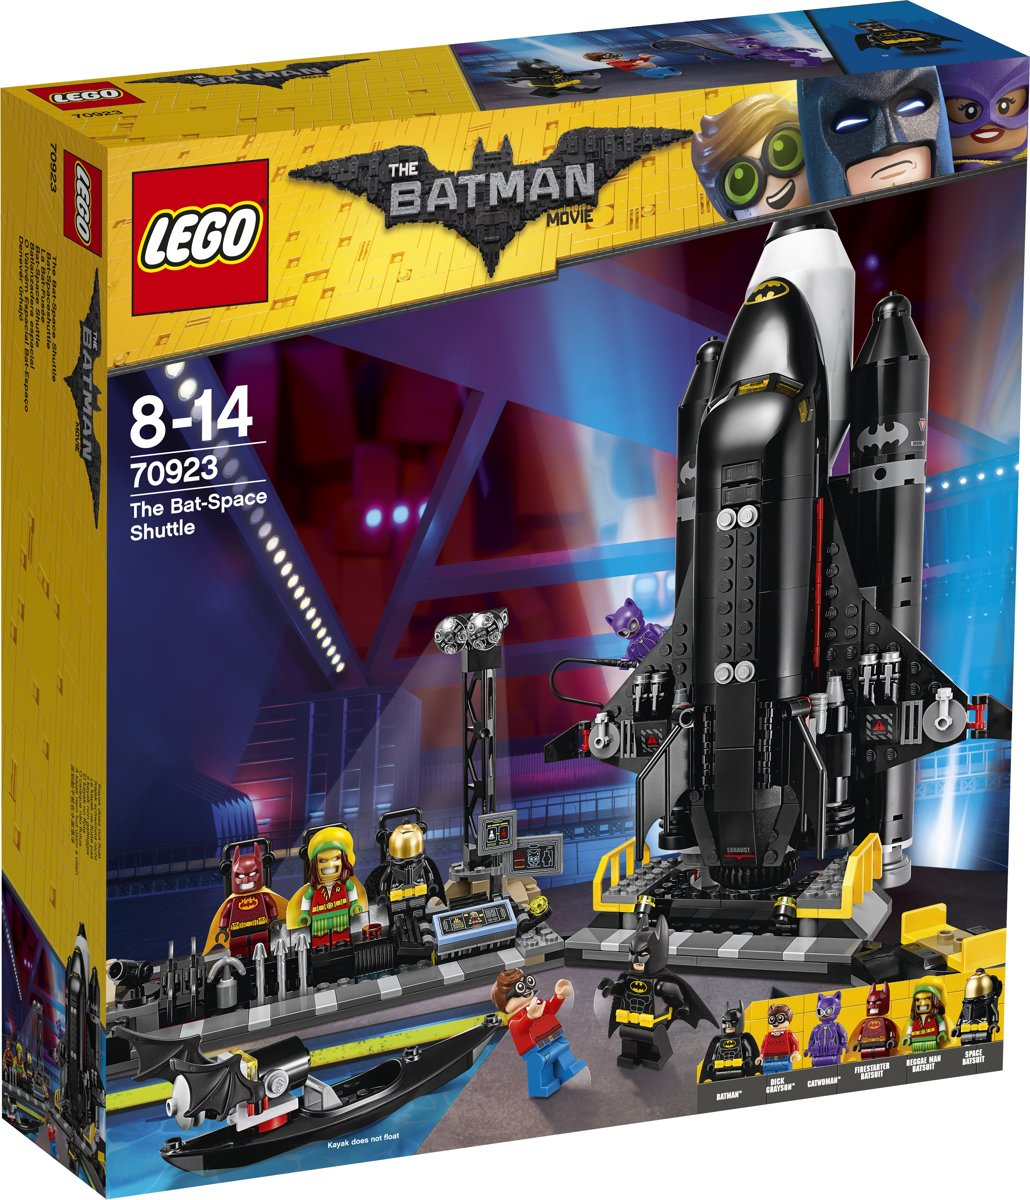 LEGO Batman Movie De Bat-Space Shuttle - 70923